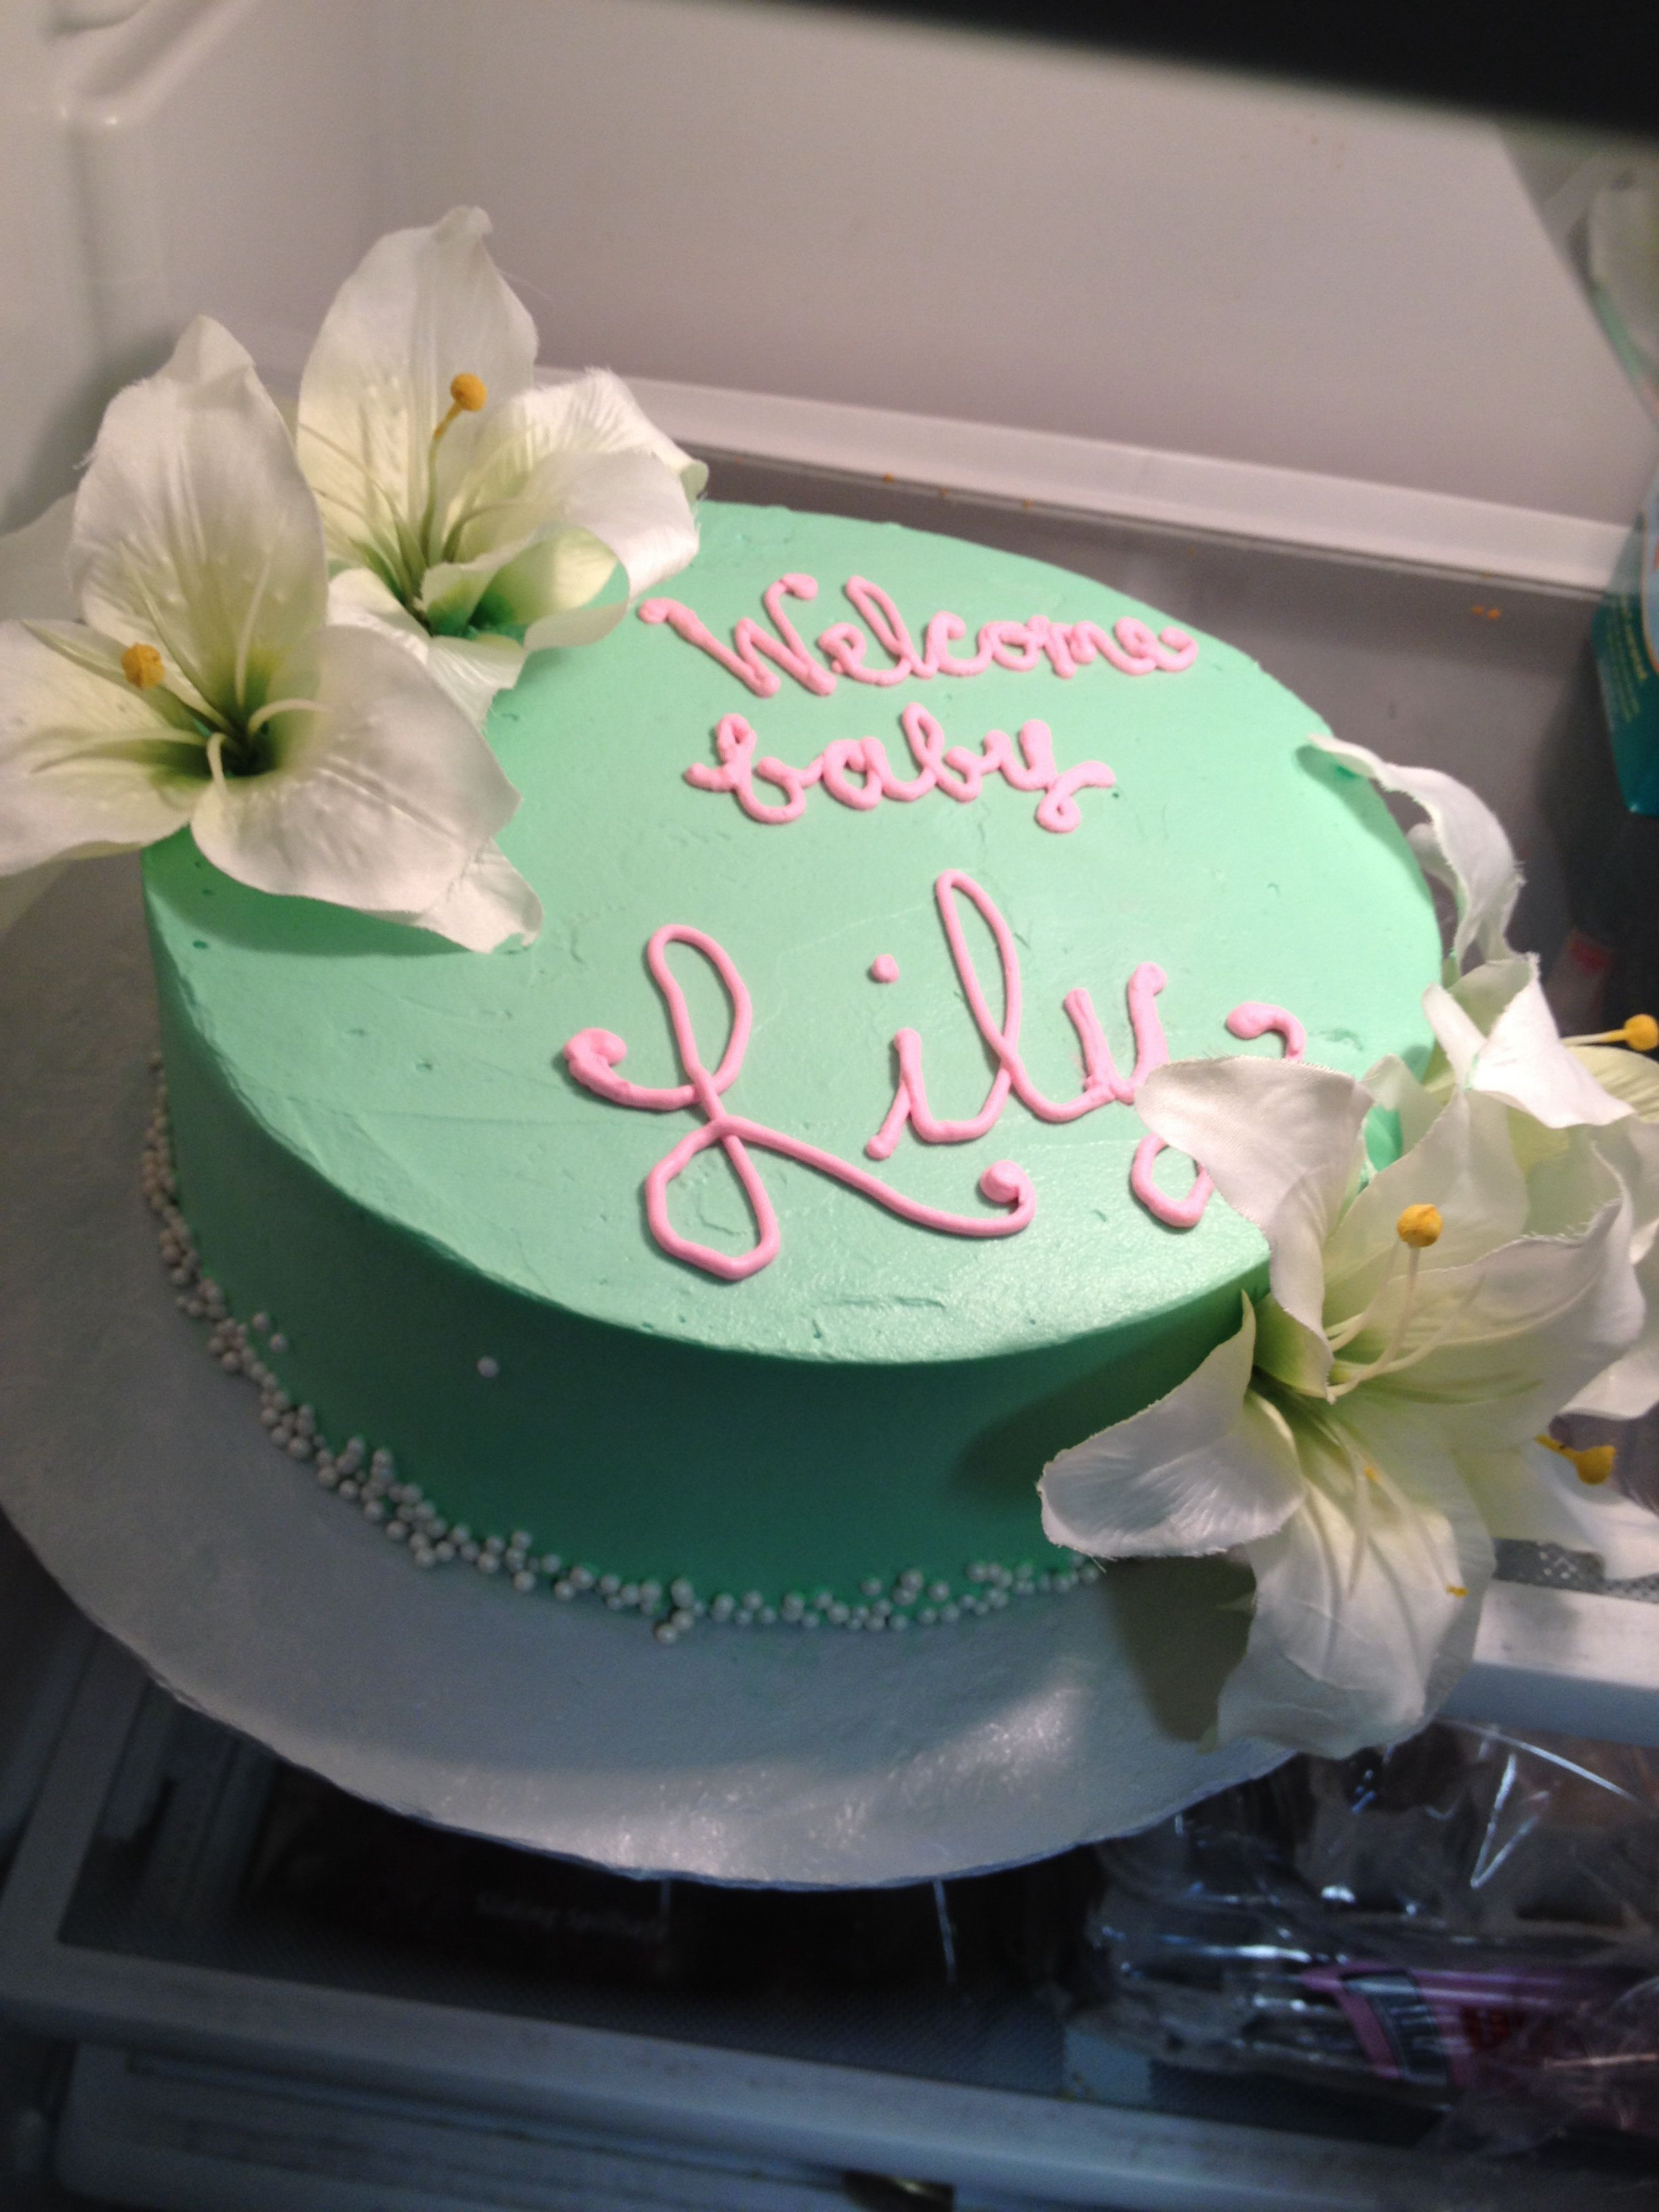 A Cake Perfectly Fit For A Baby Girl Named Lilysimple,